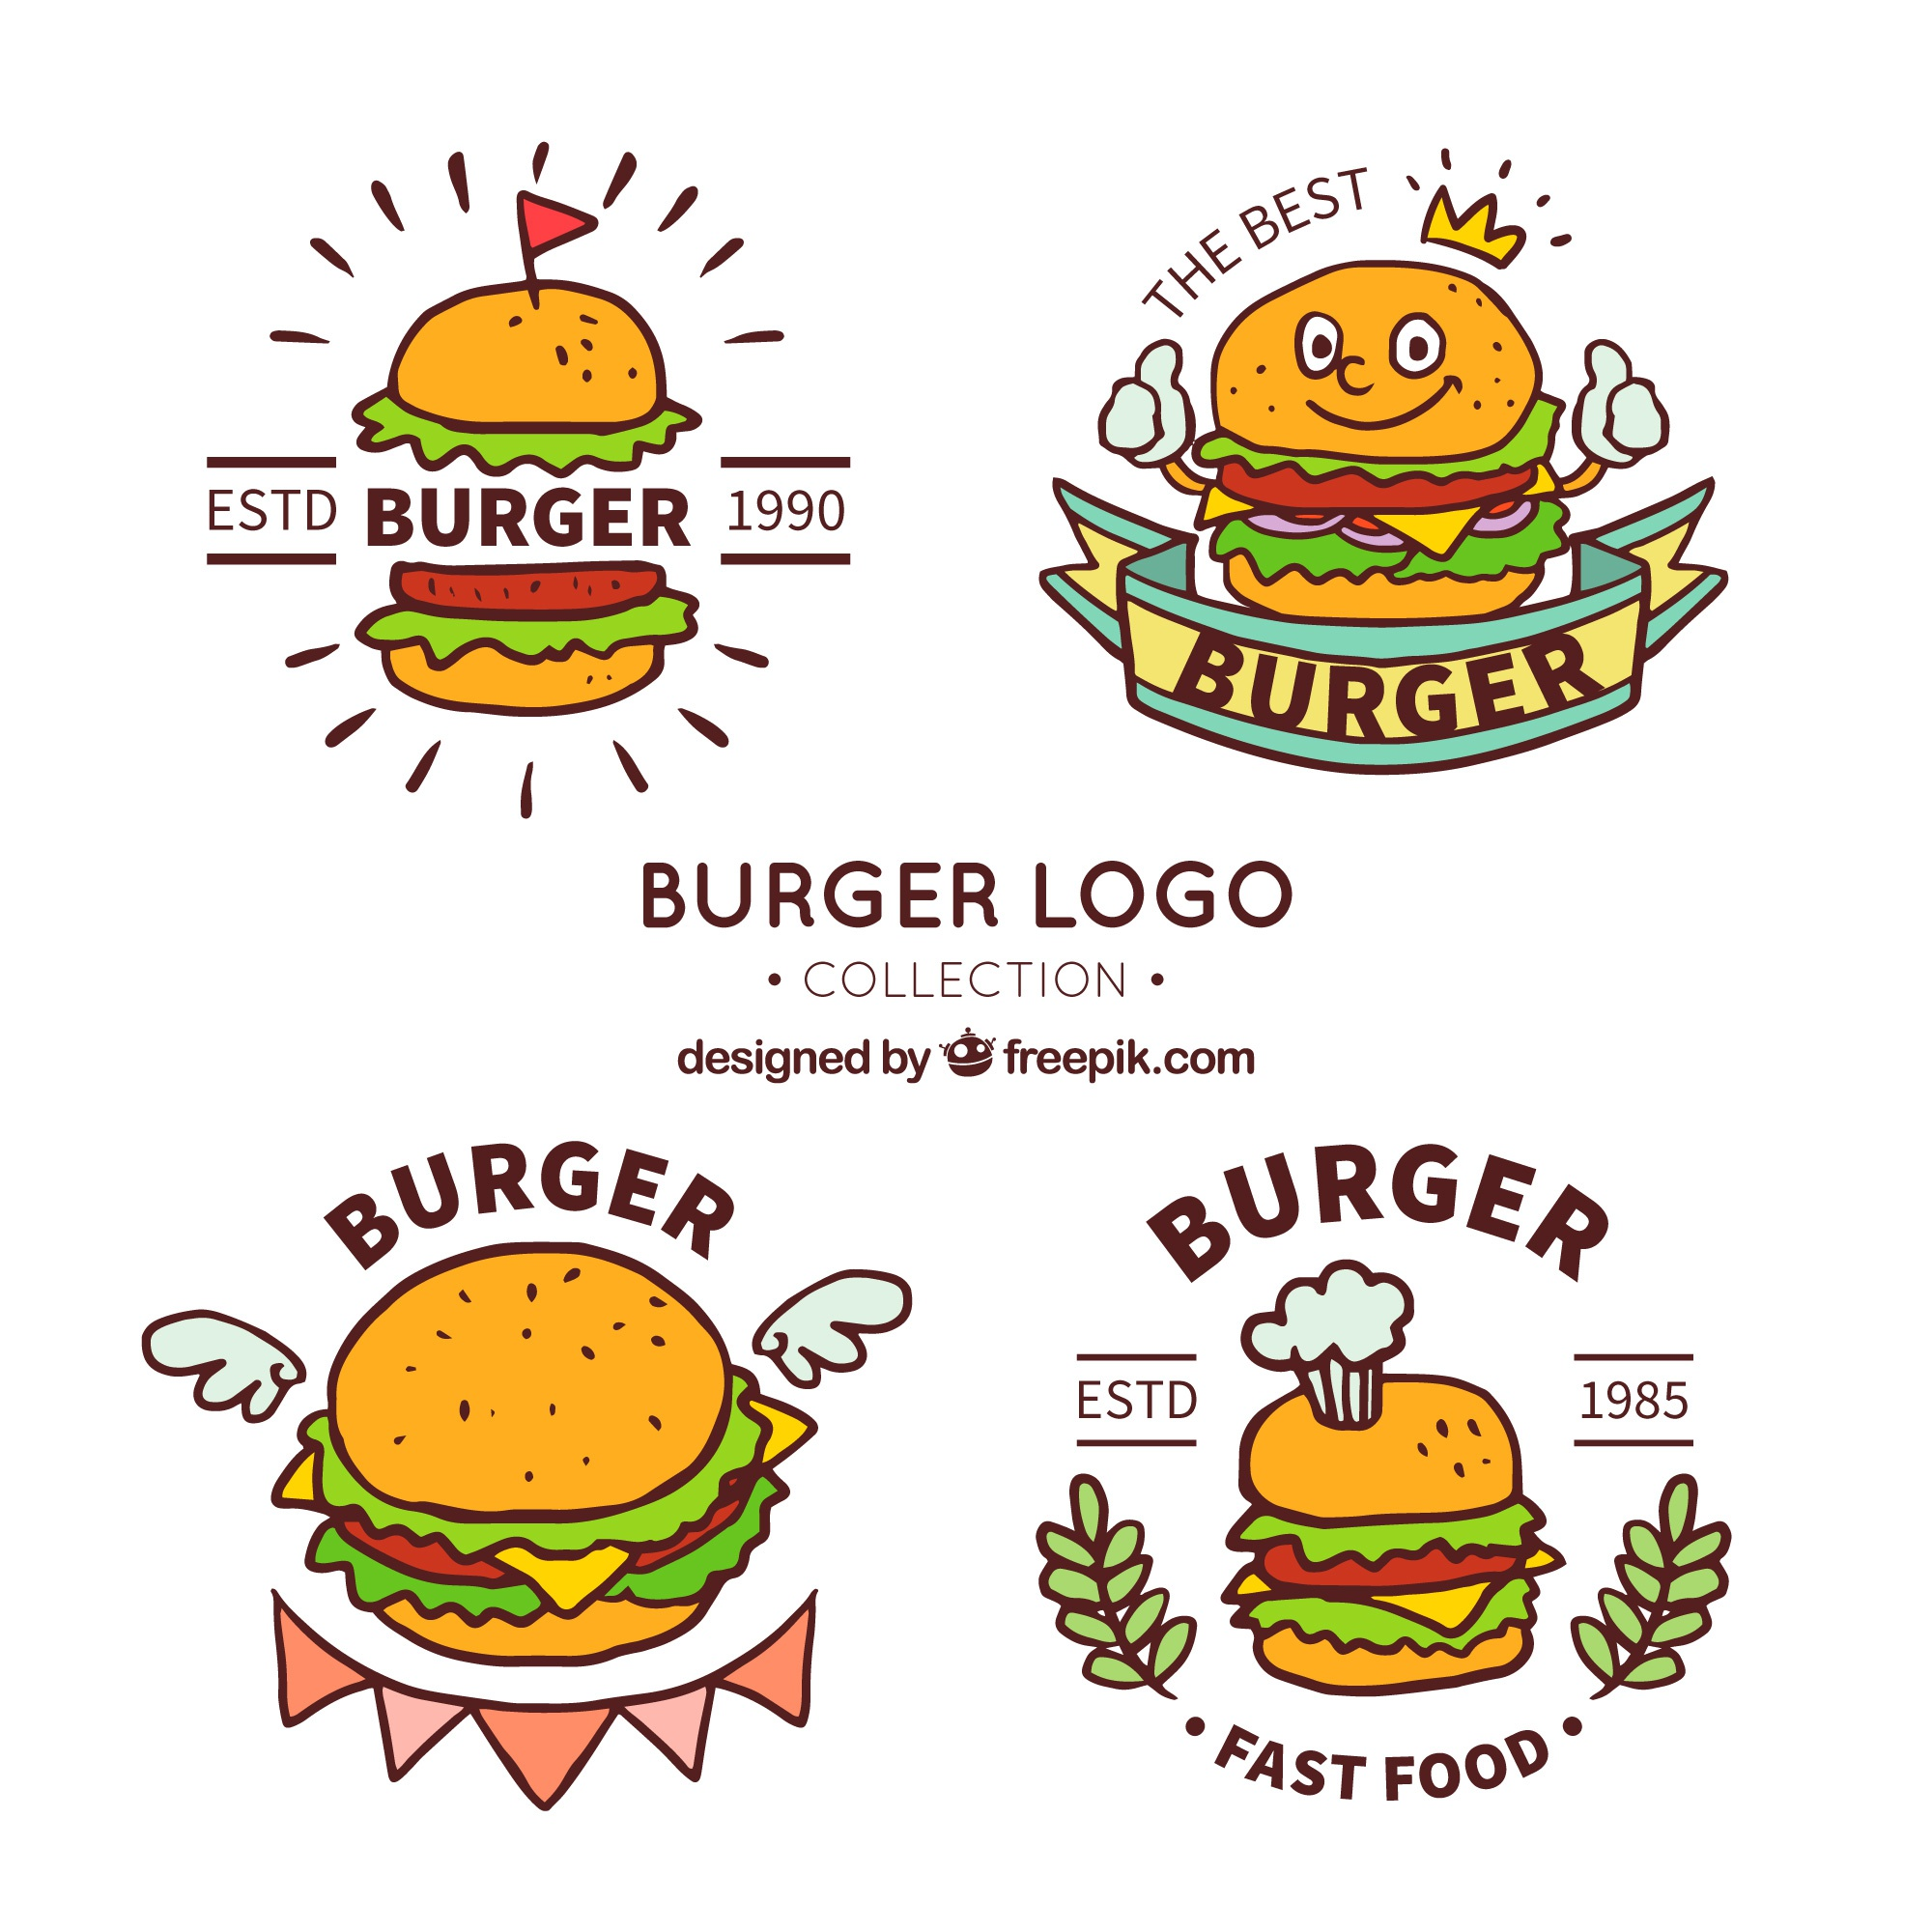 Great collection of burger logos in hand-drawn style